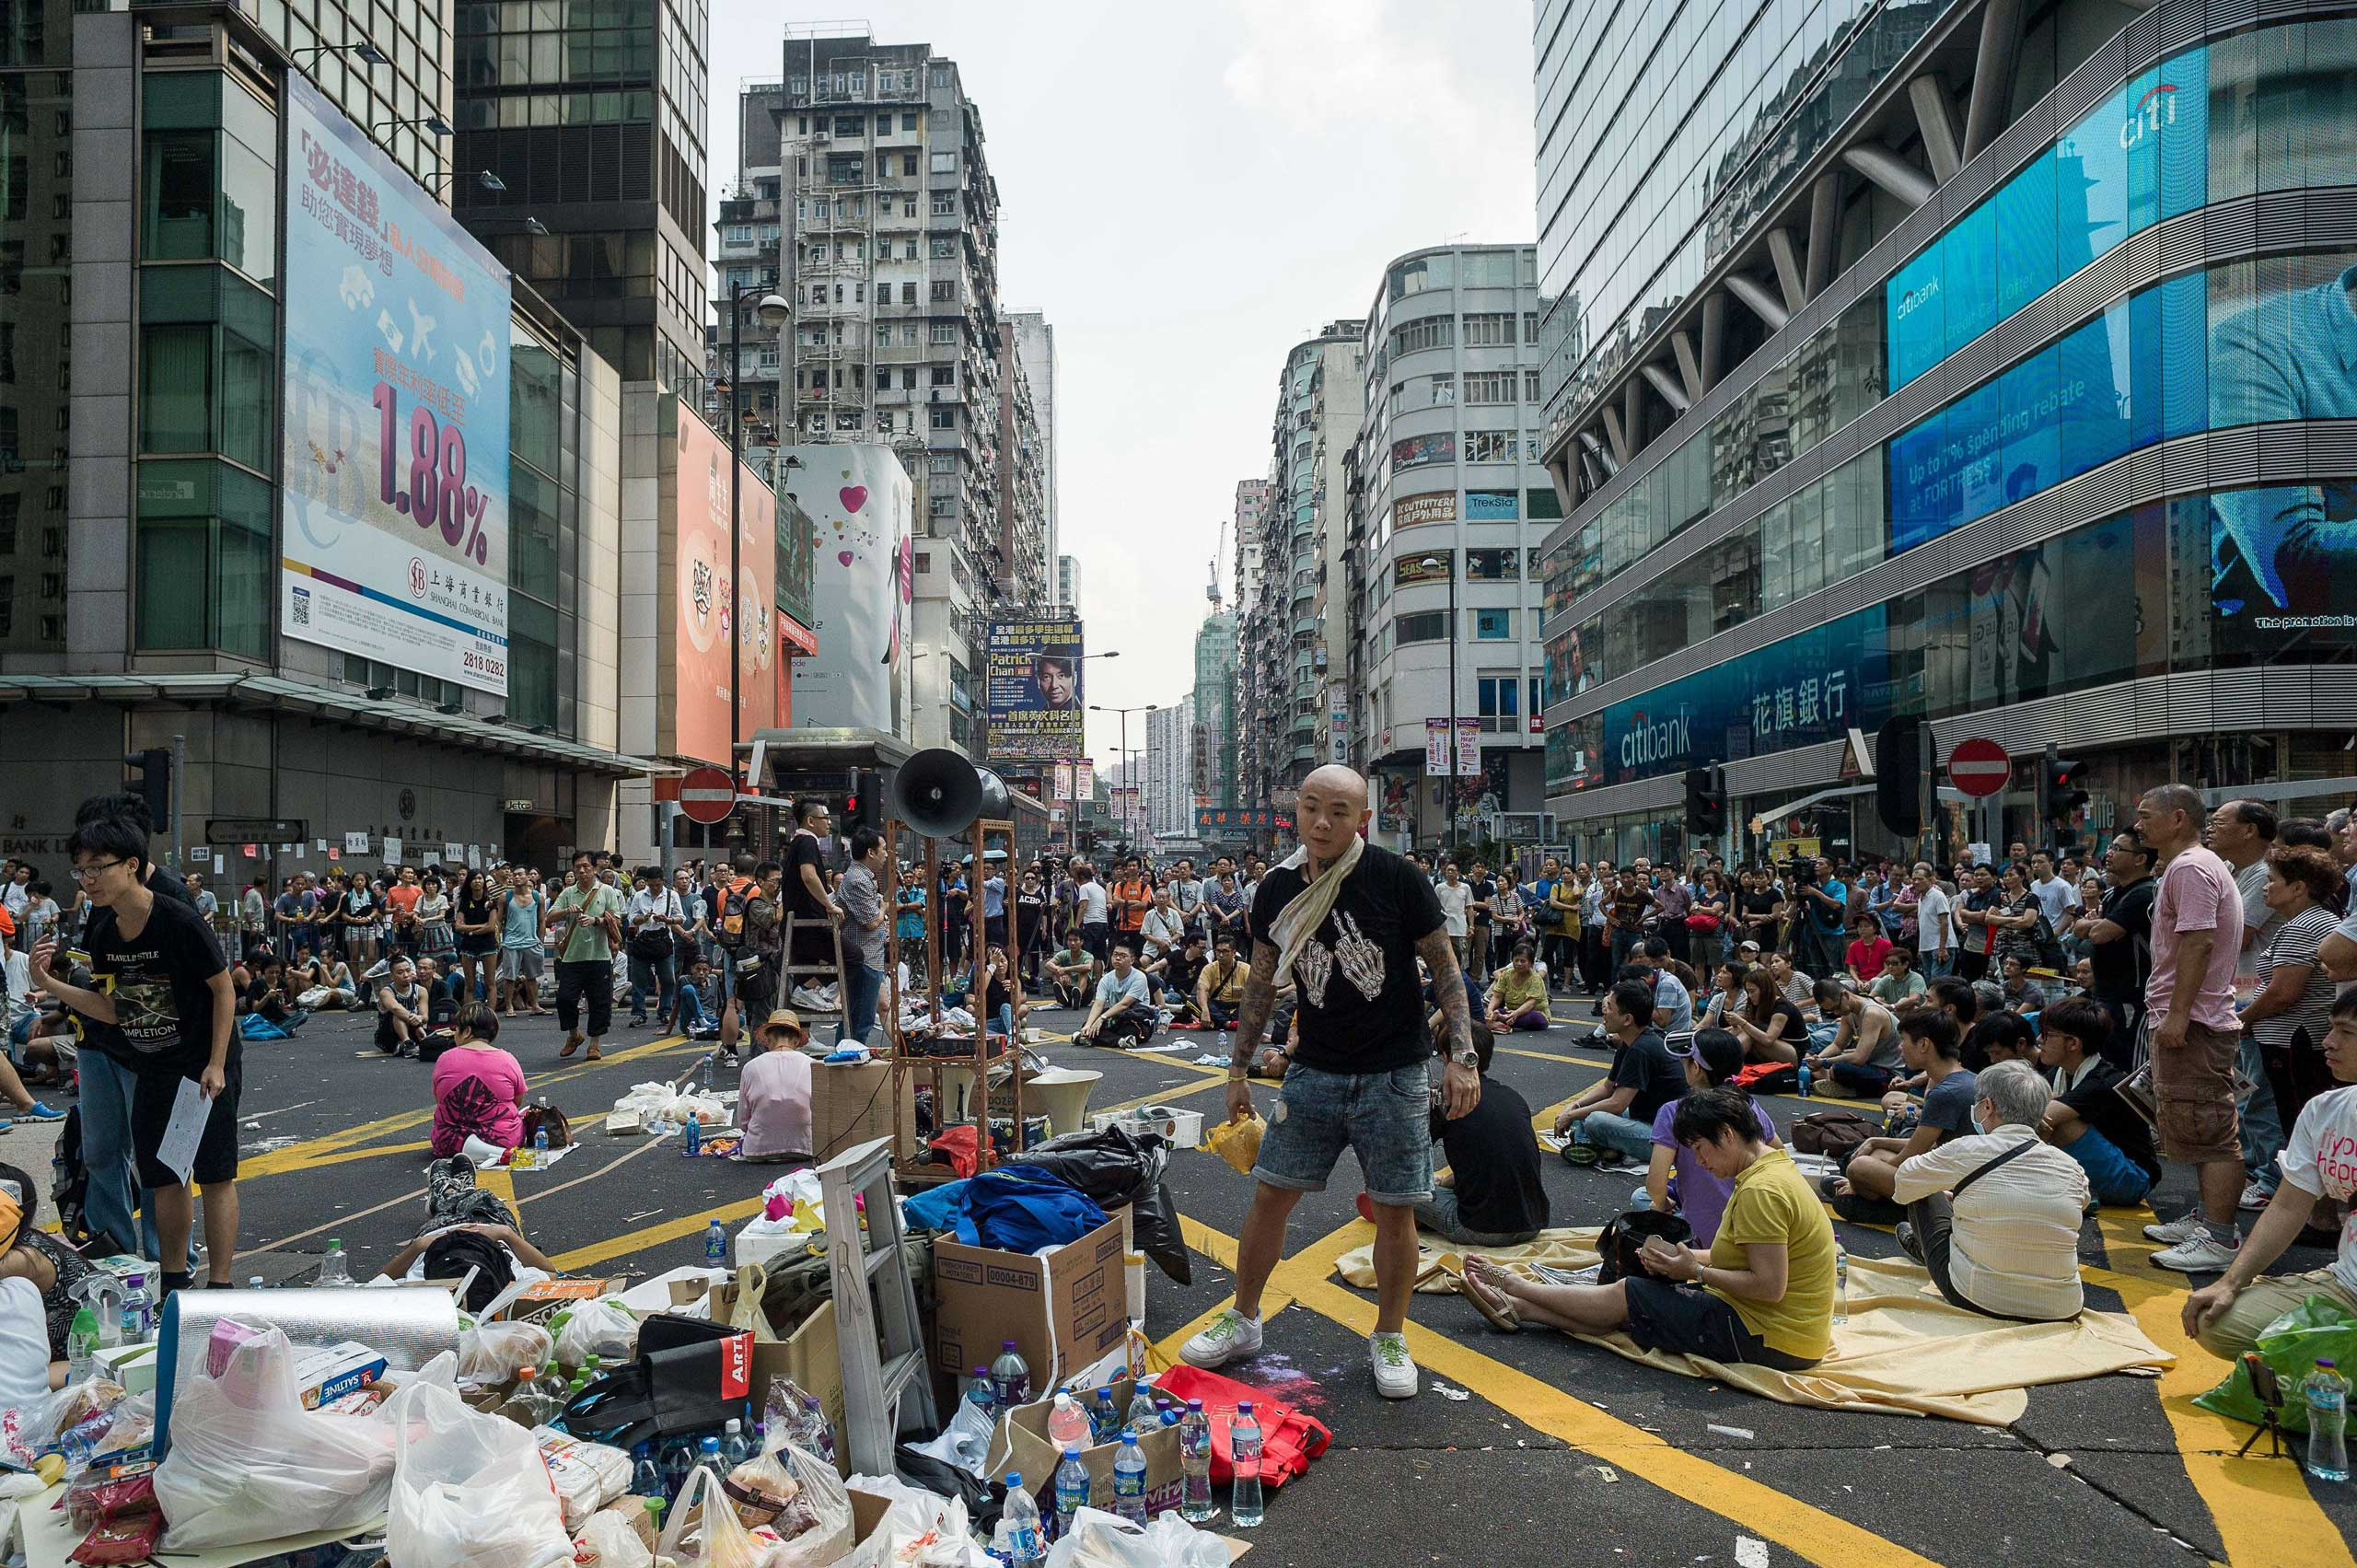 Pro-democracy demonstrators rest during a protest in Hong Kong on Sept. 30, 2014.